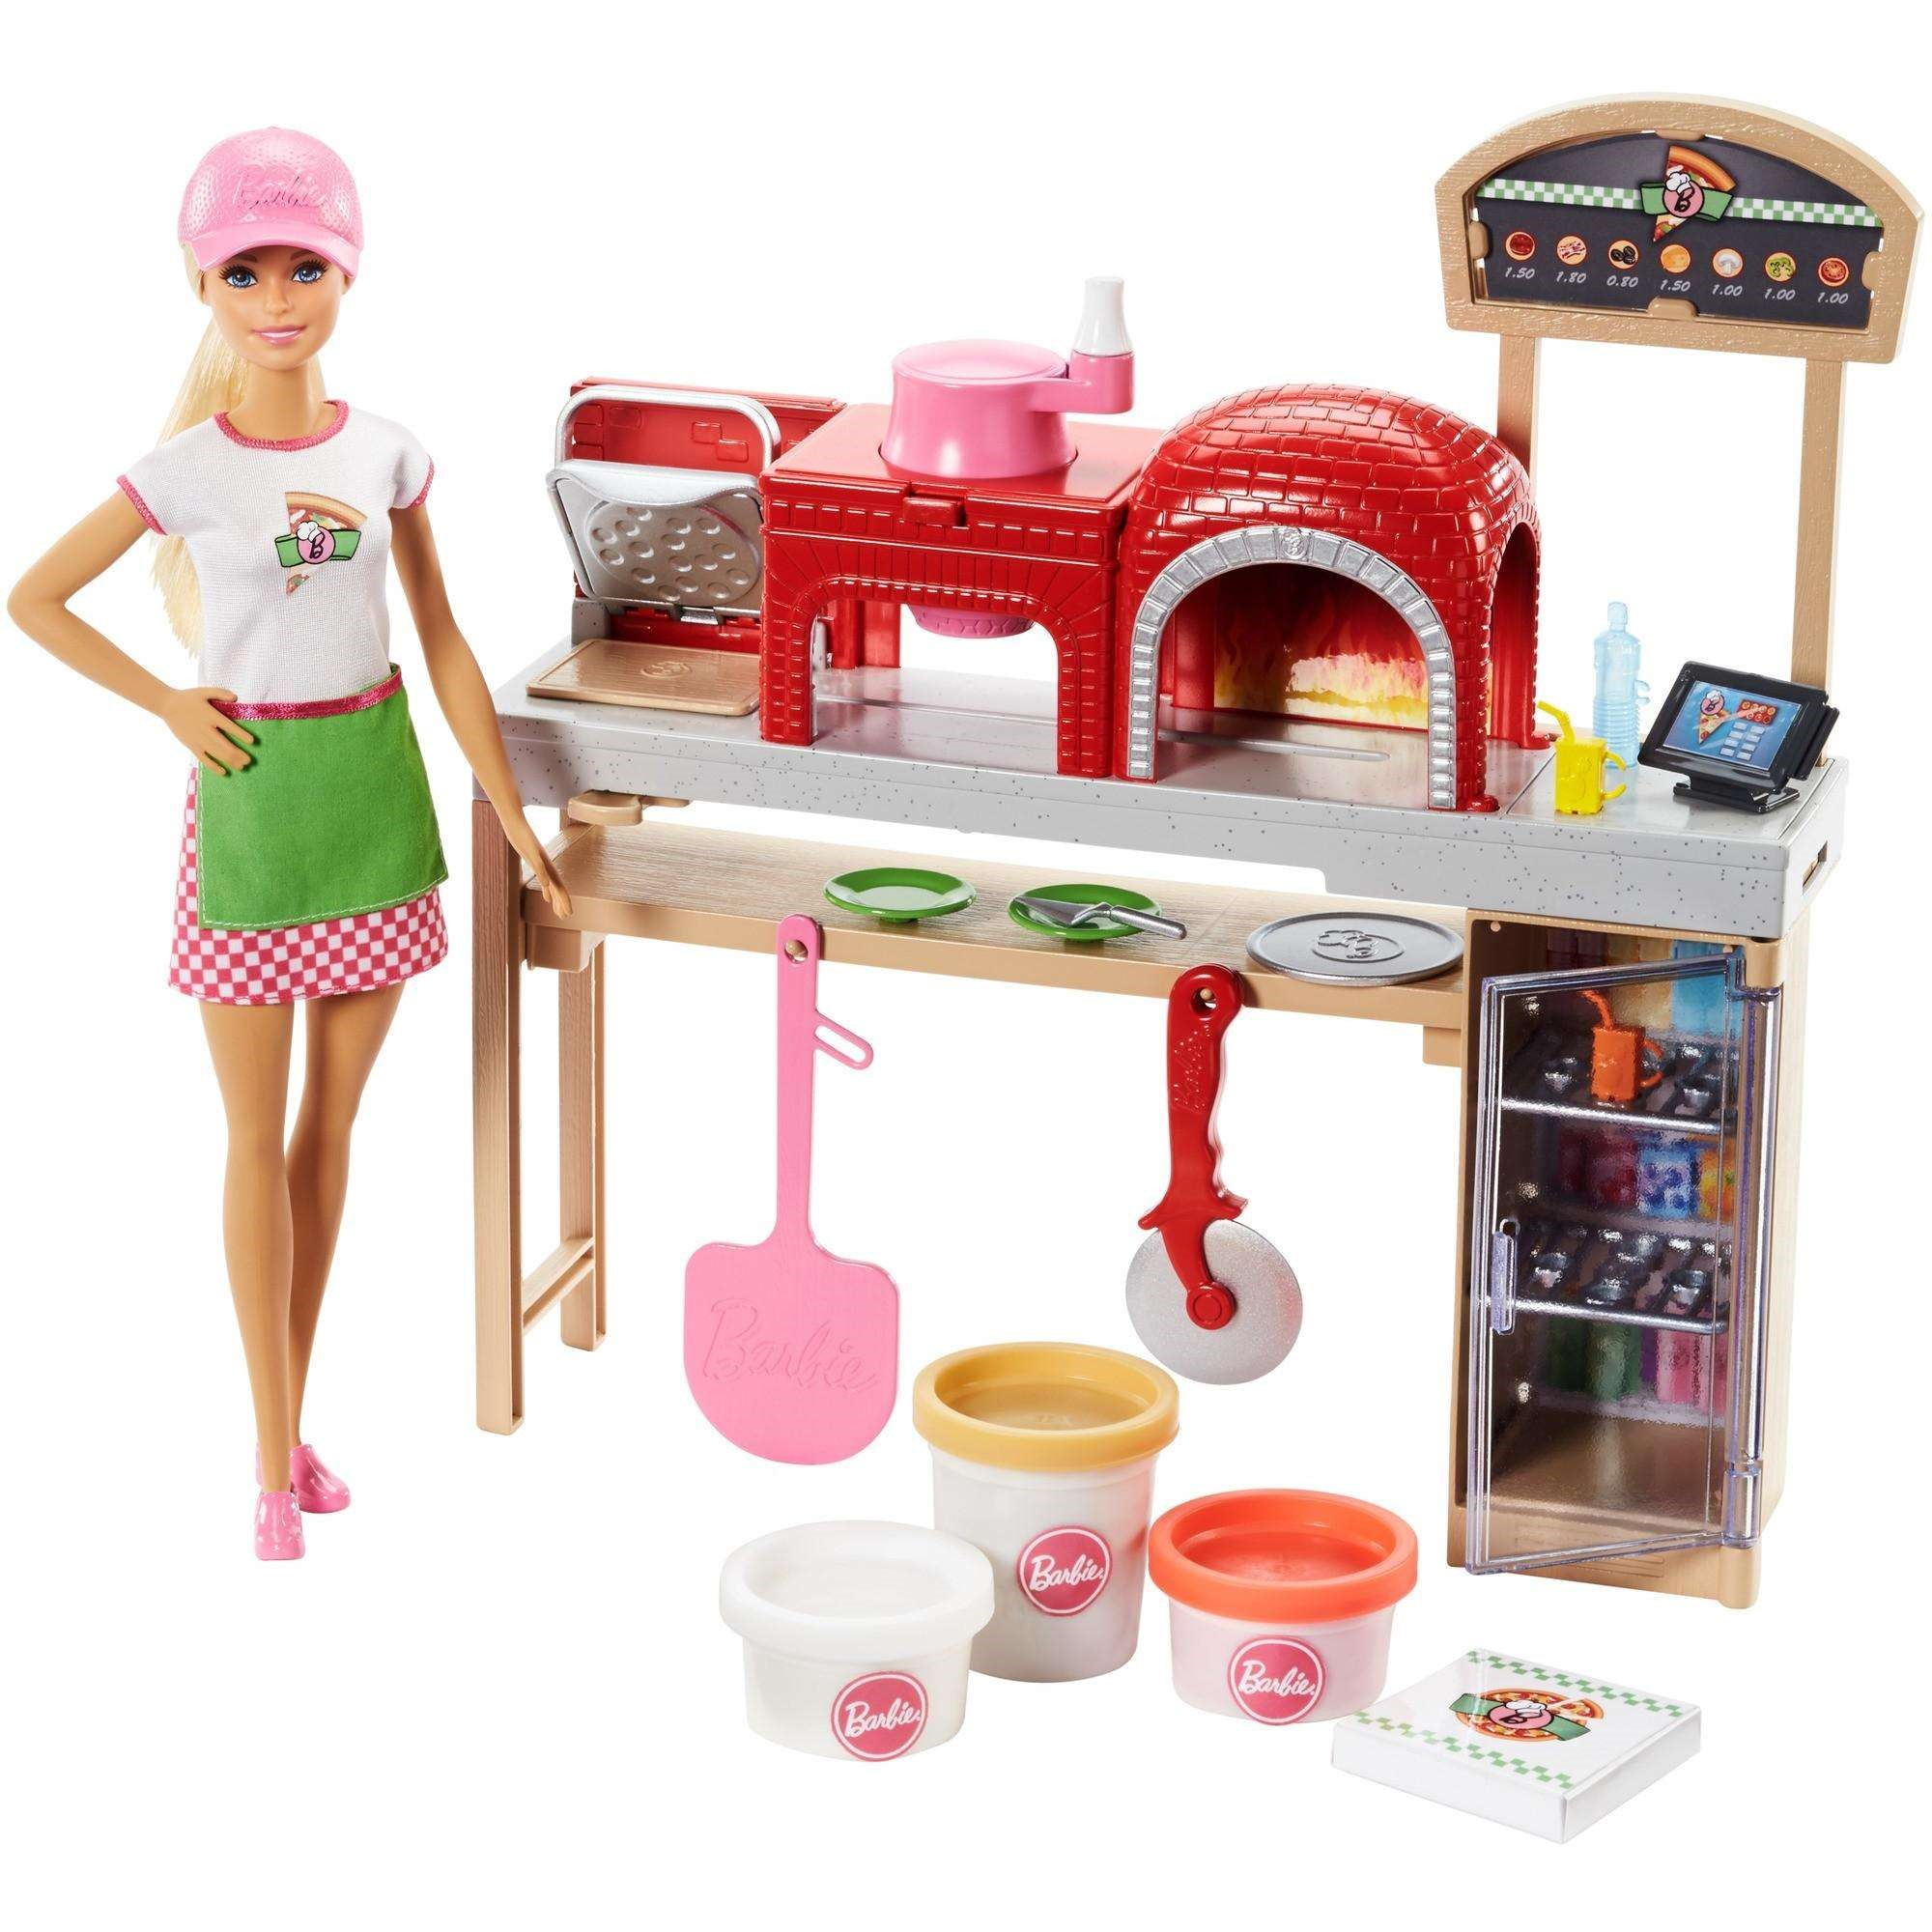 Barbie Cooking & Baking Pizza Making Chef Doll & Play Set